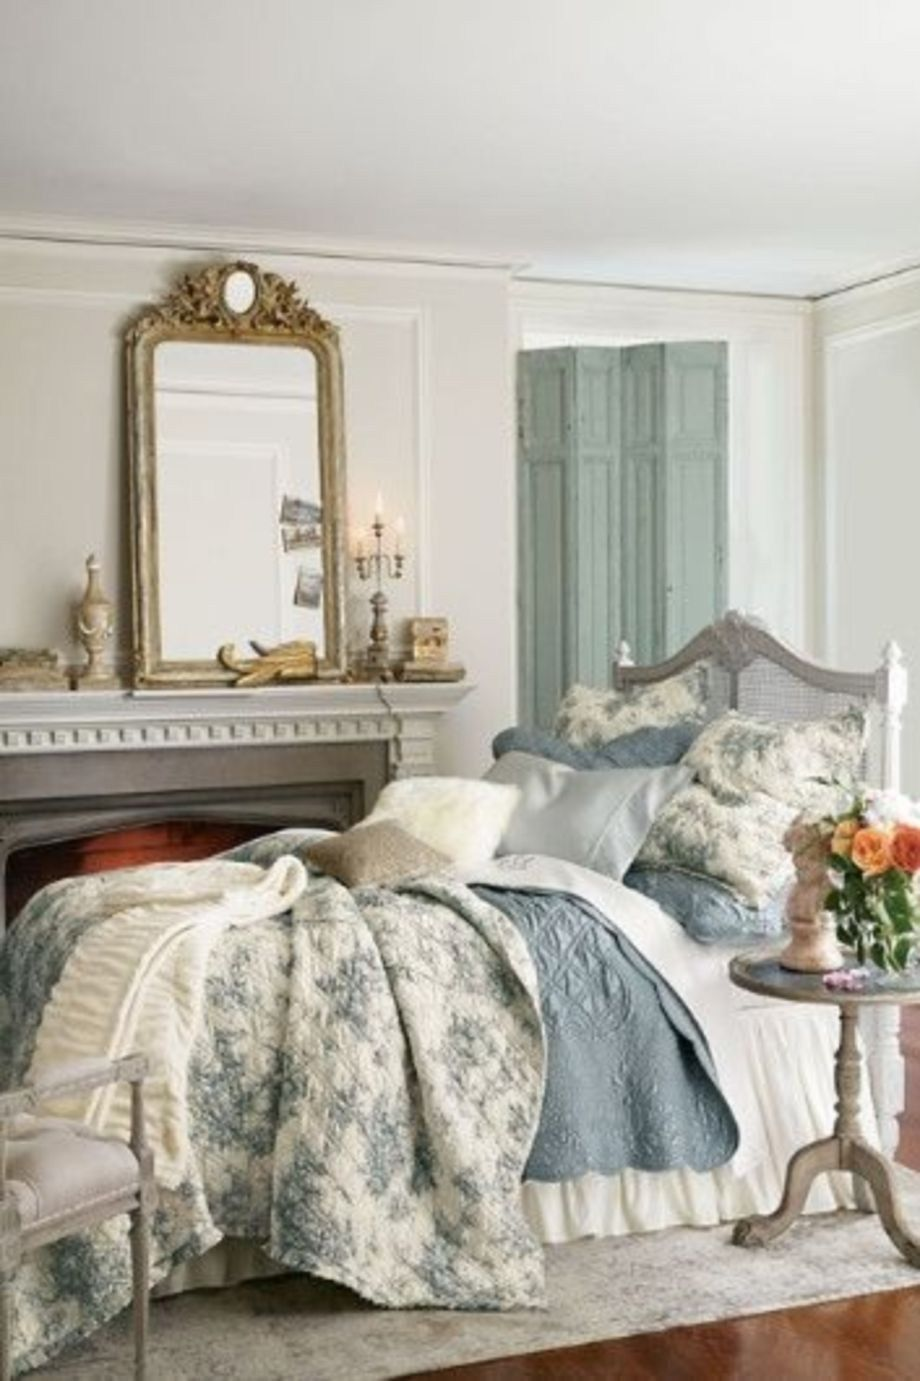 30+ Modern French Country Bedroom Decor Ideas To Copy Asap